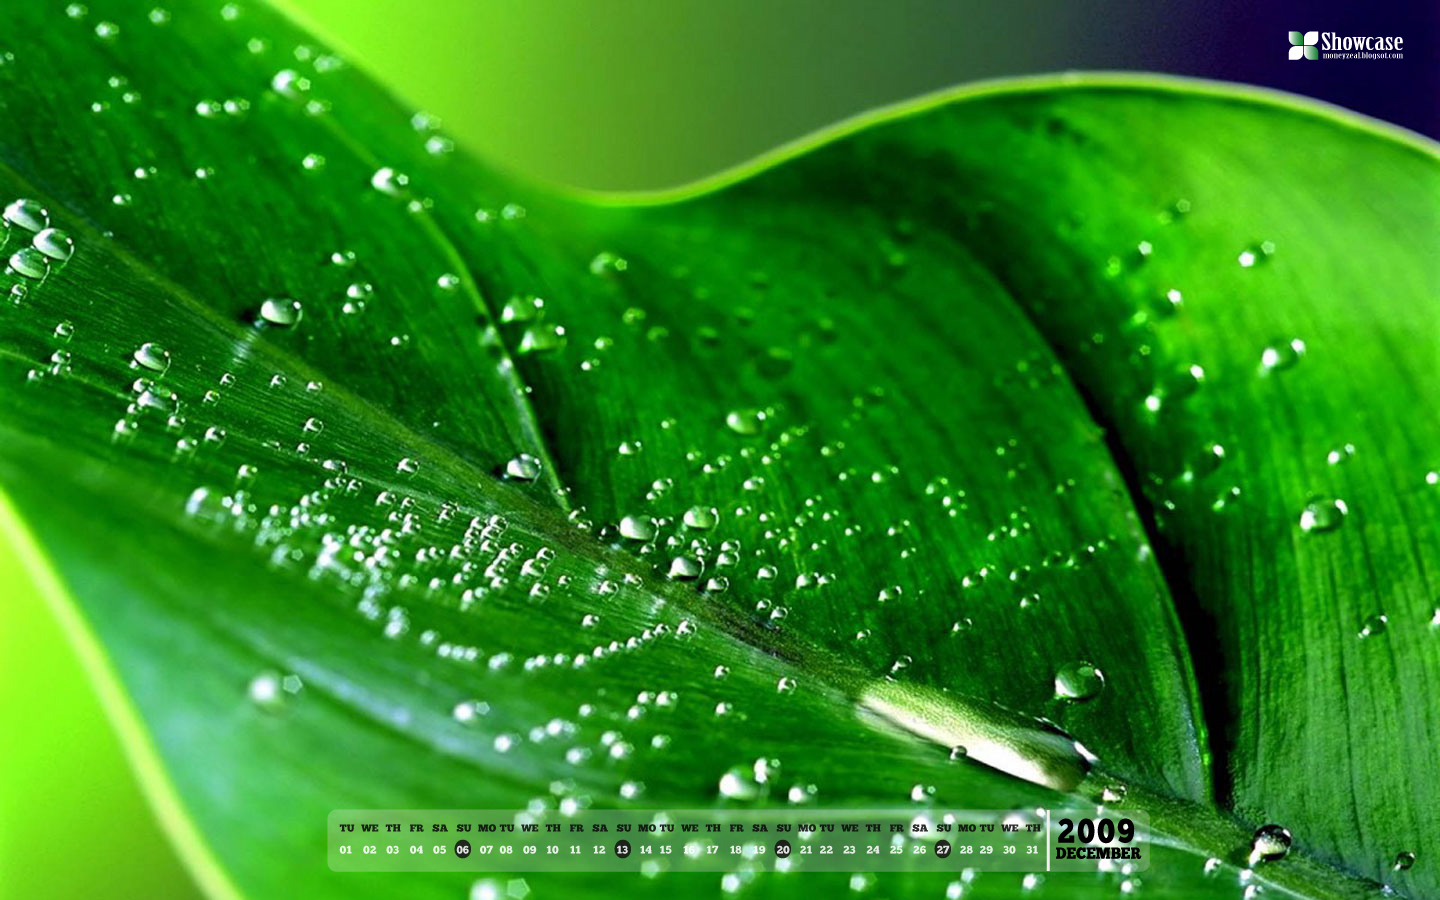 http://2.bp.blogspot.com/_DEB1t8q_om0/SwybKIgPTRI/AAAAAAAACgA/S--xdk1TnfY/s1600/Desktop-wallpaper-calendars-background-december-2009-green-hd-wallpaper-1440x900.jpg.jpg